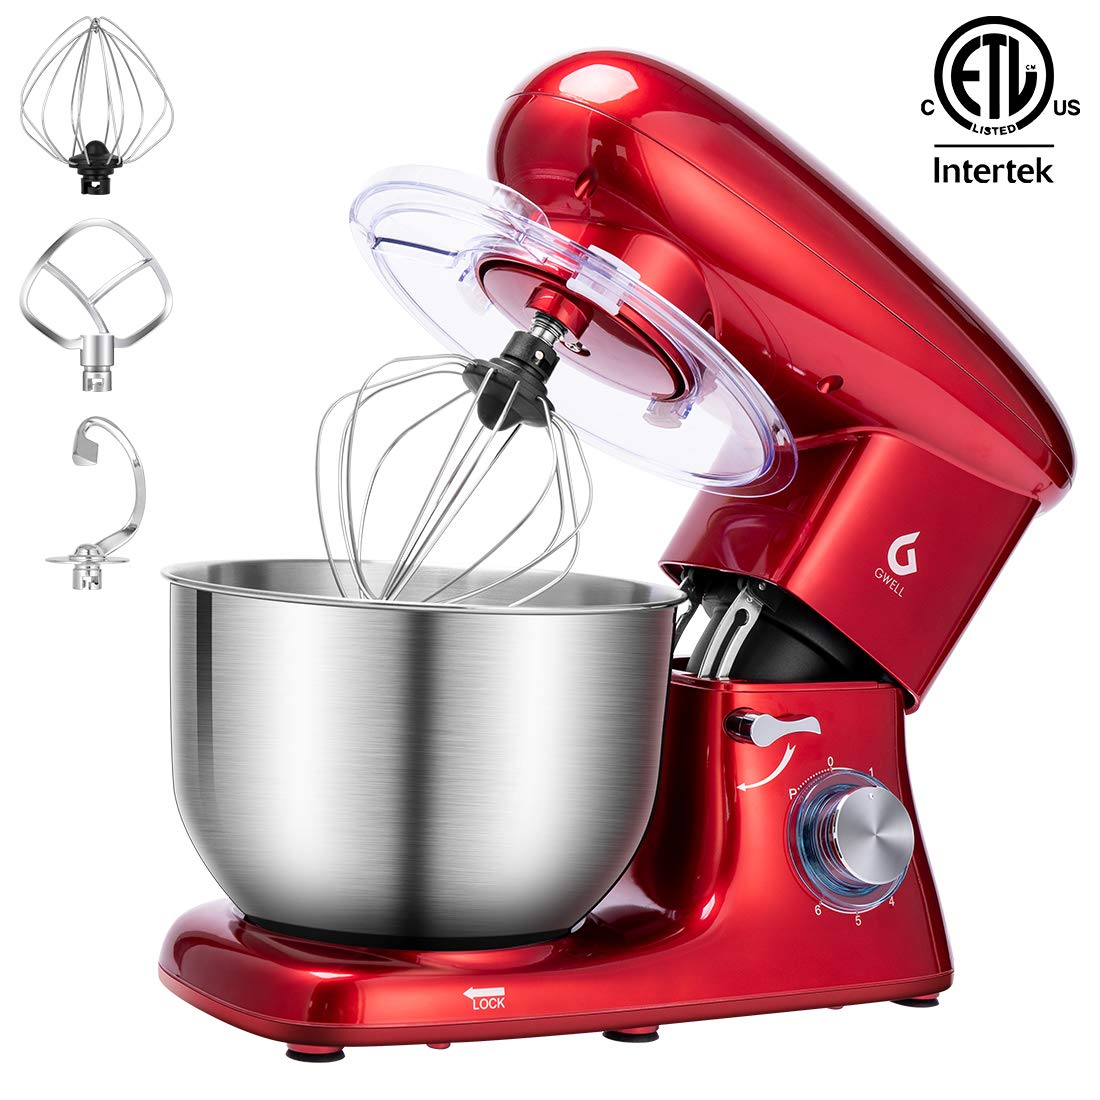 GWELL Tilt-Head Stand Mixer, 6-Speed Electric Mixer with Stainless Steel Bowl, Dough Hook, Beater and Whisk, Red